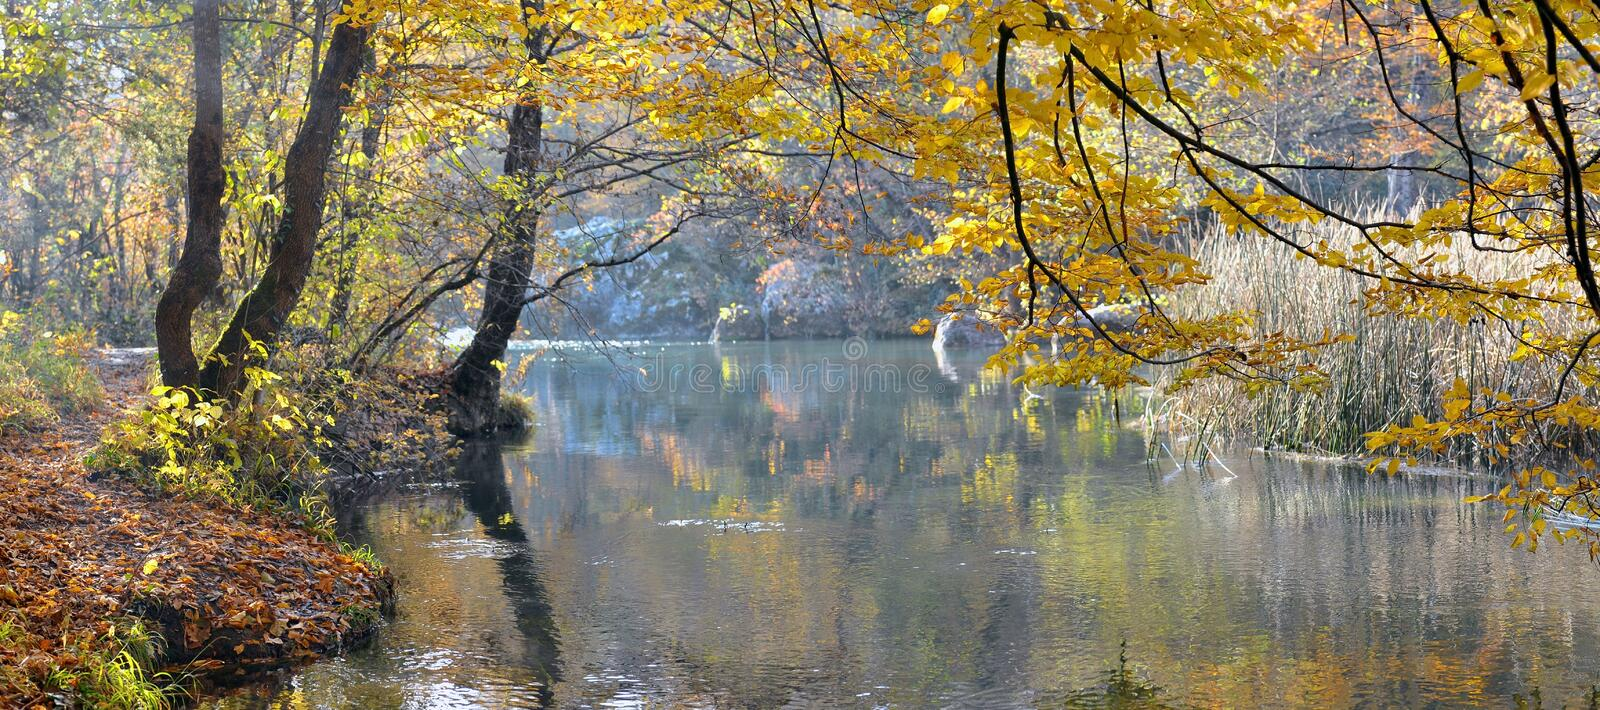 Download Mountain River In Beechen Autumn Wood Stock Photo - Image: 23321324